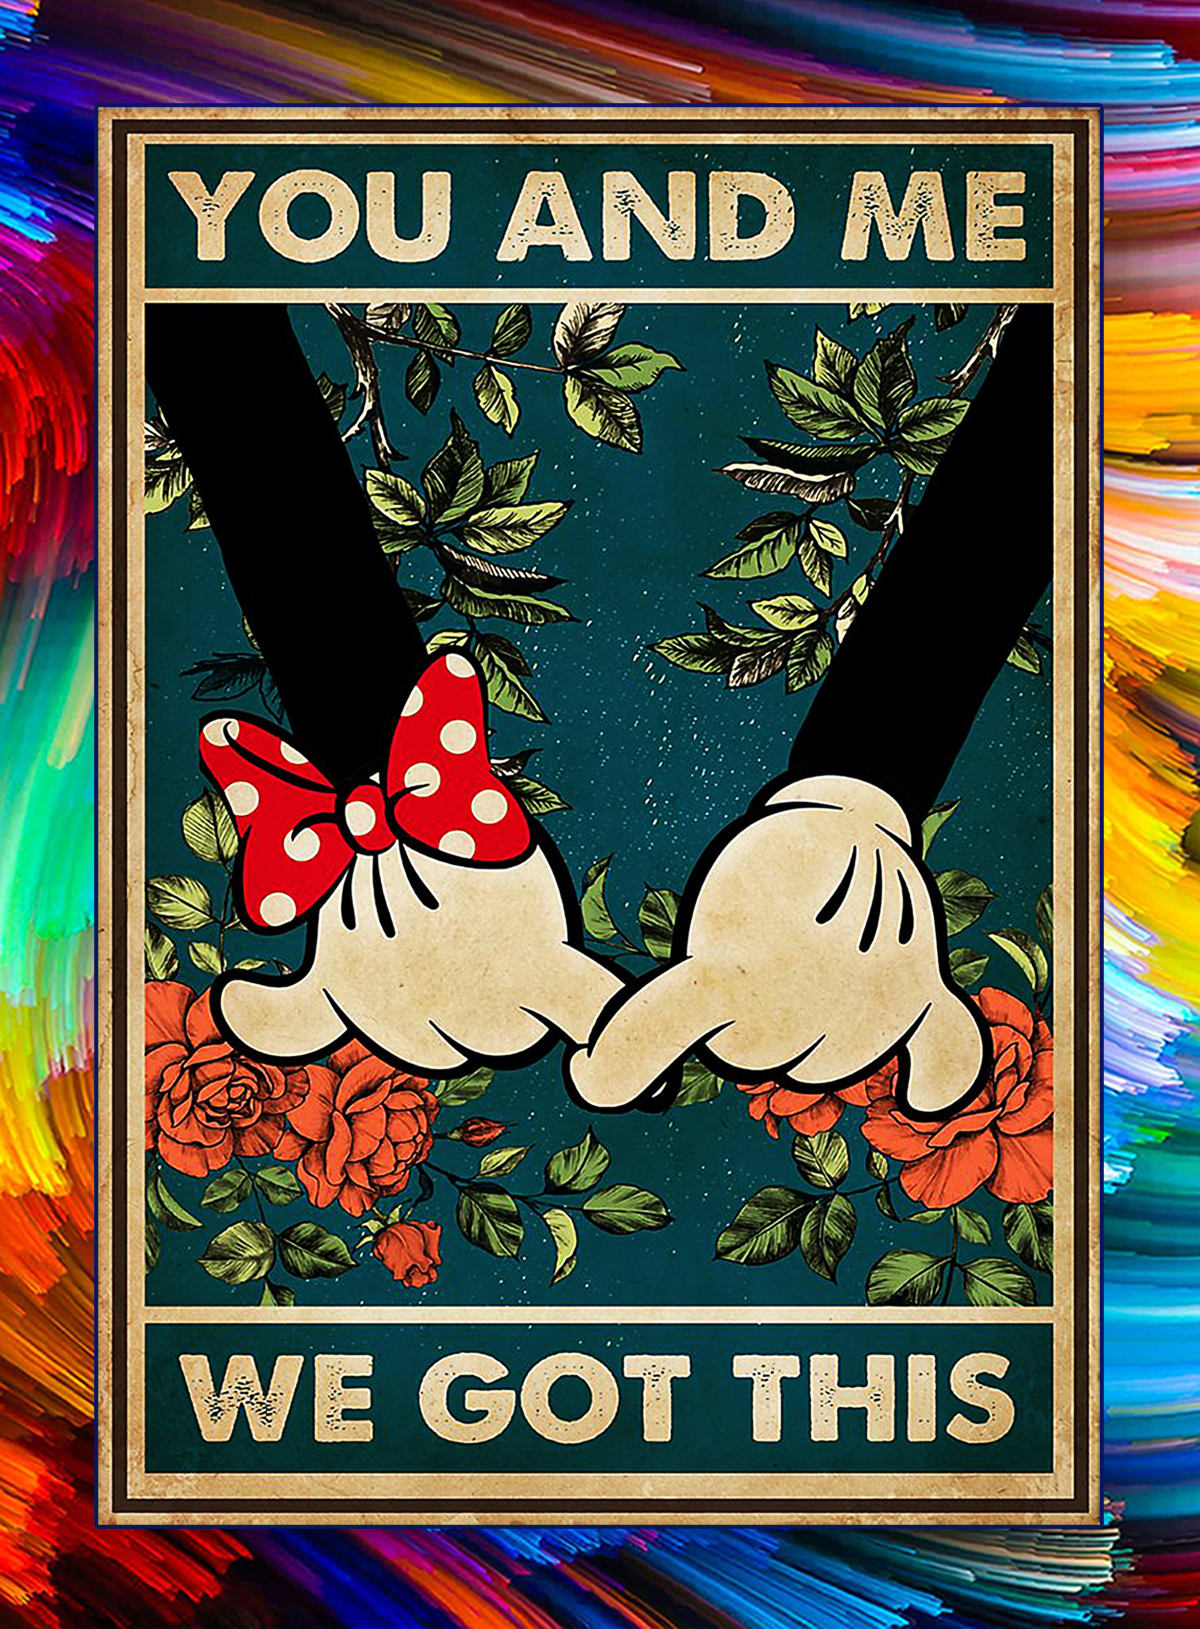 MICKEY AND MINNIE YOU AND ME WE GOT THIS POSTER - A1